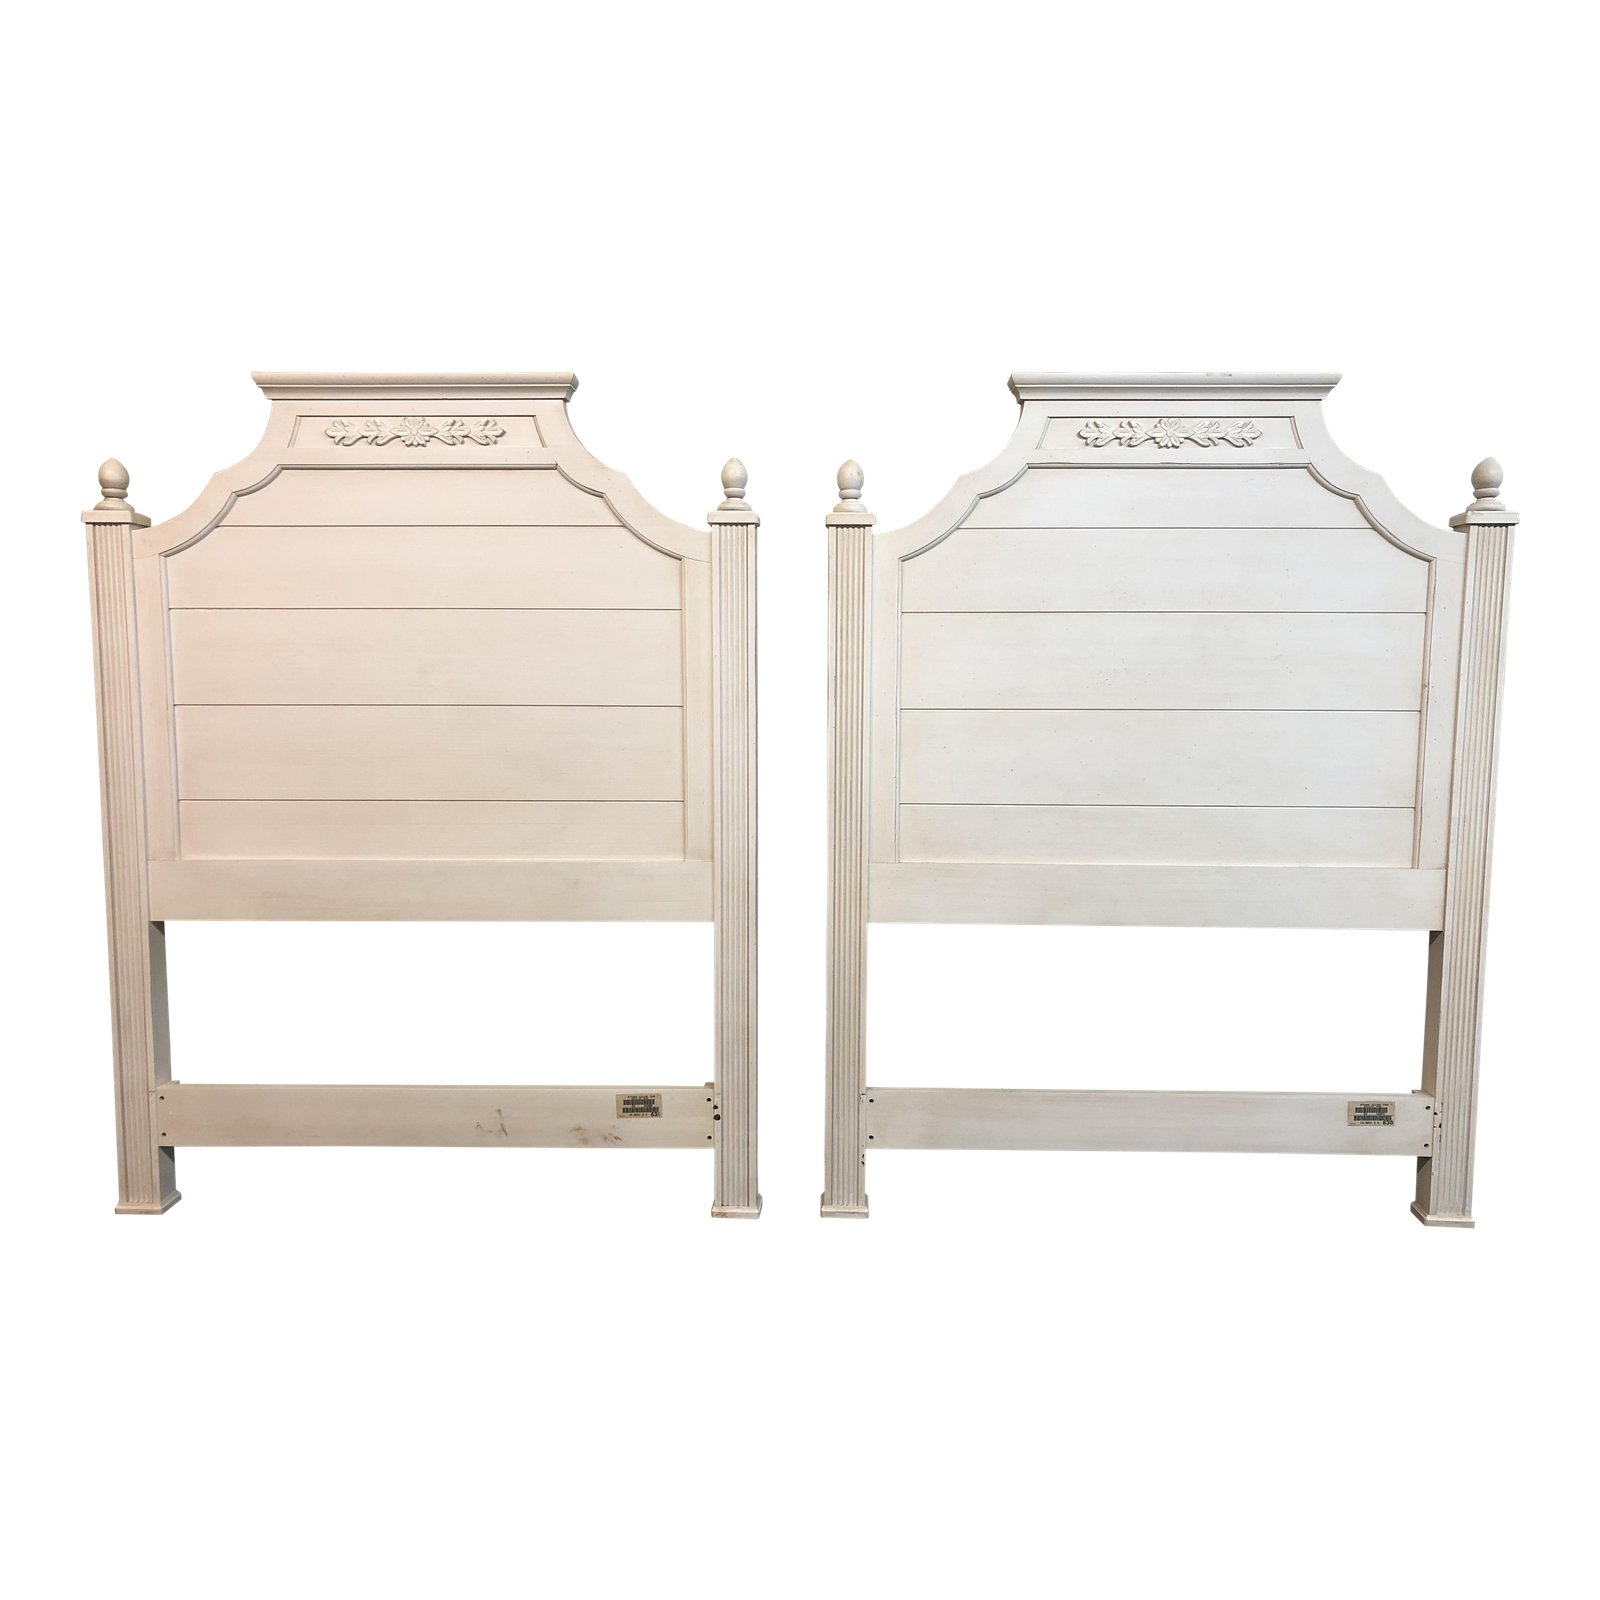 Image of: Shabby Chic Ethan Allen Twin Size Headboards Design Plus Gallery